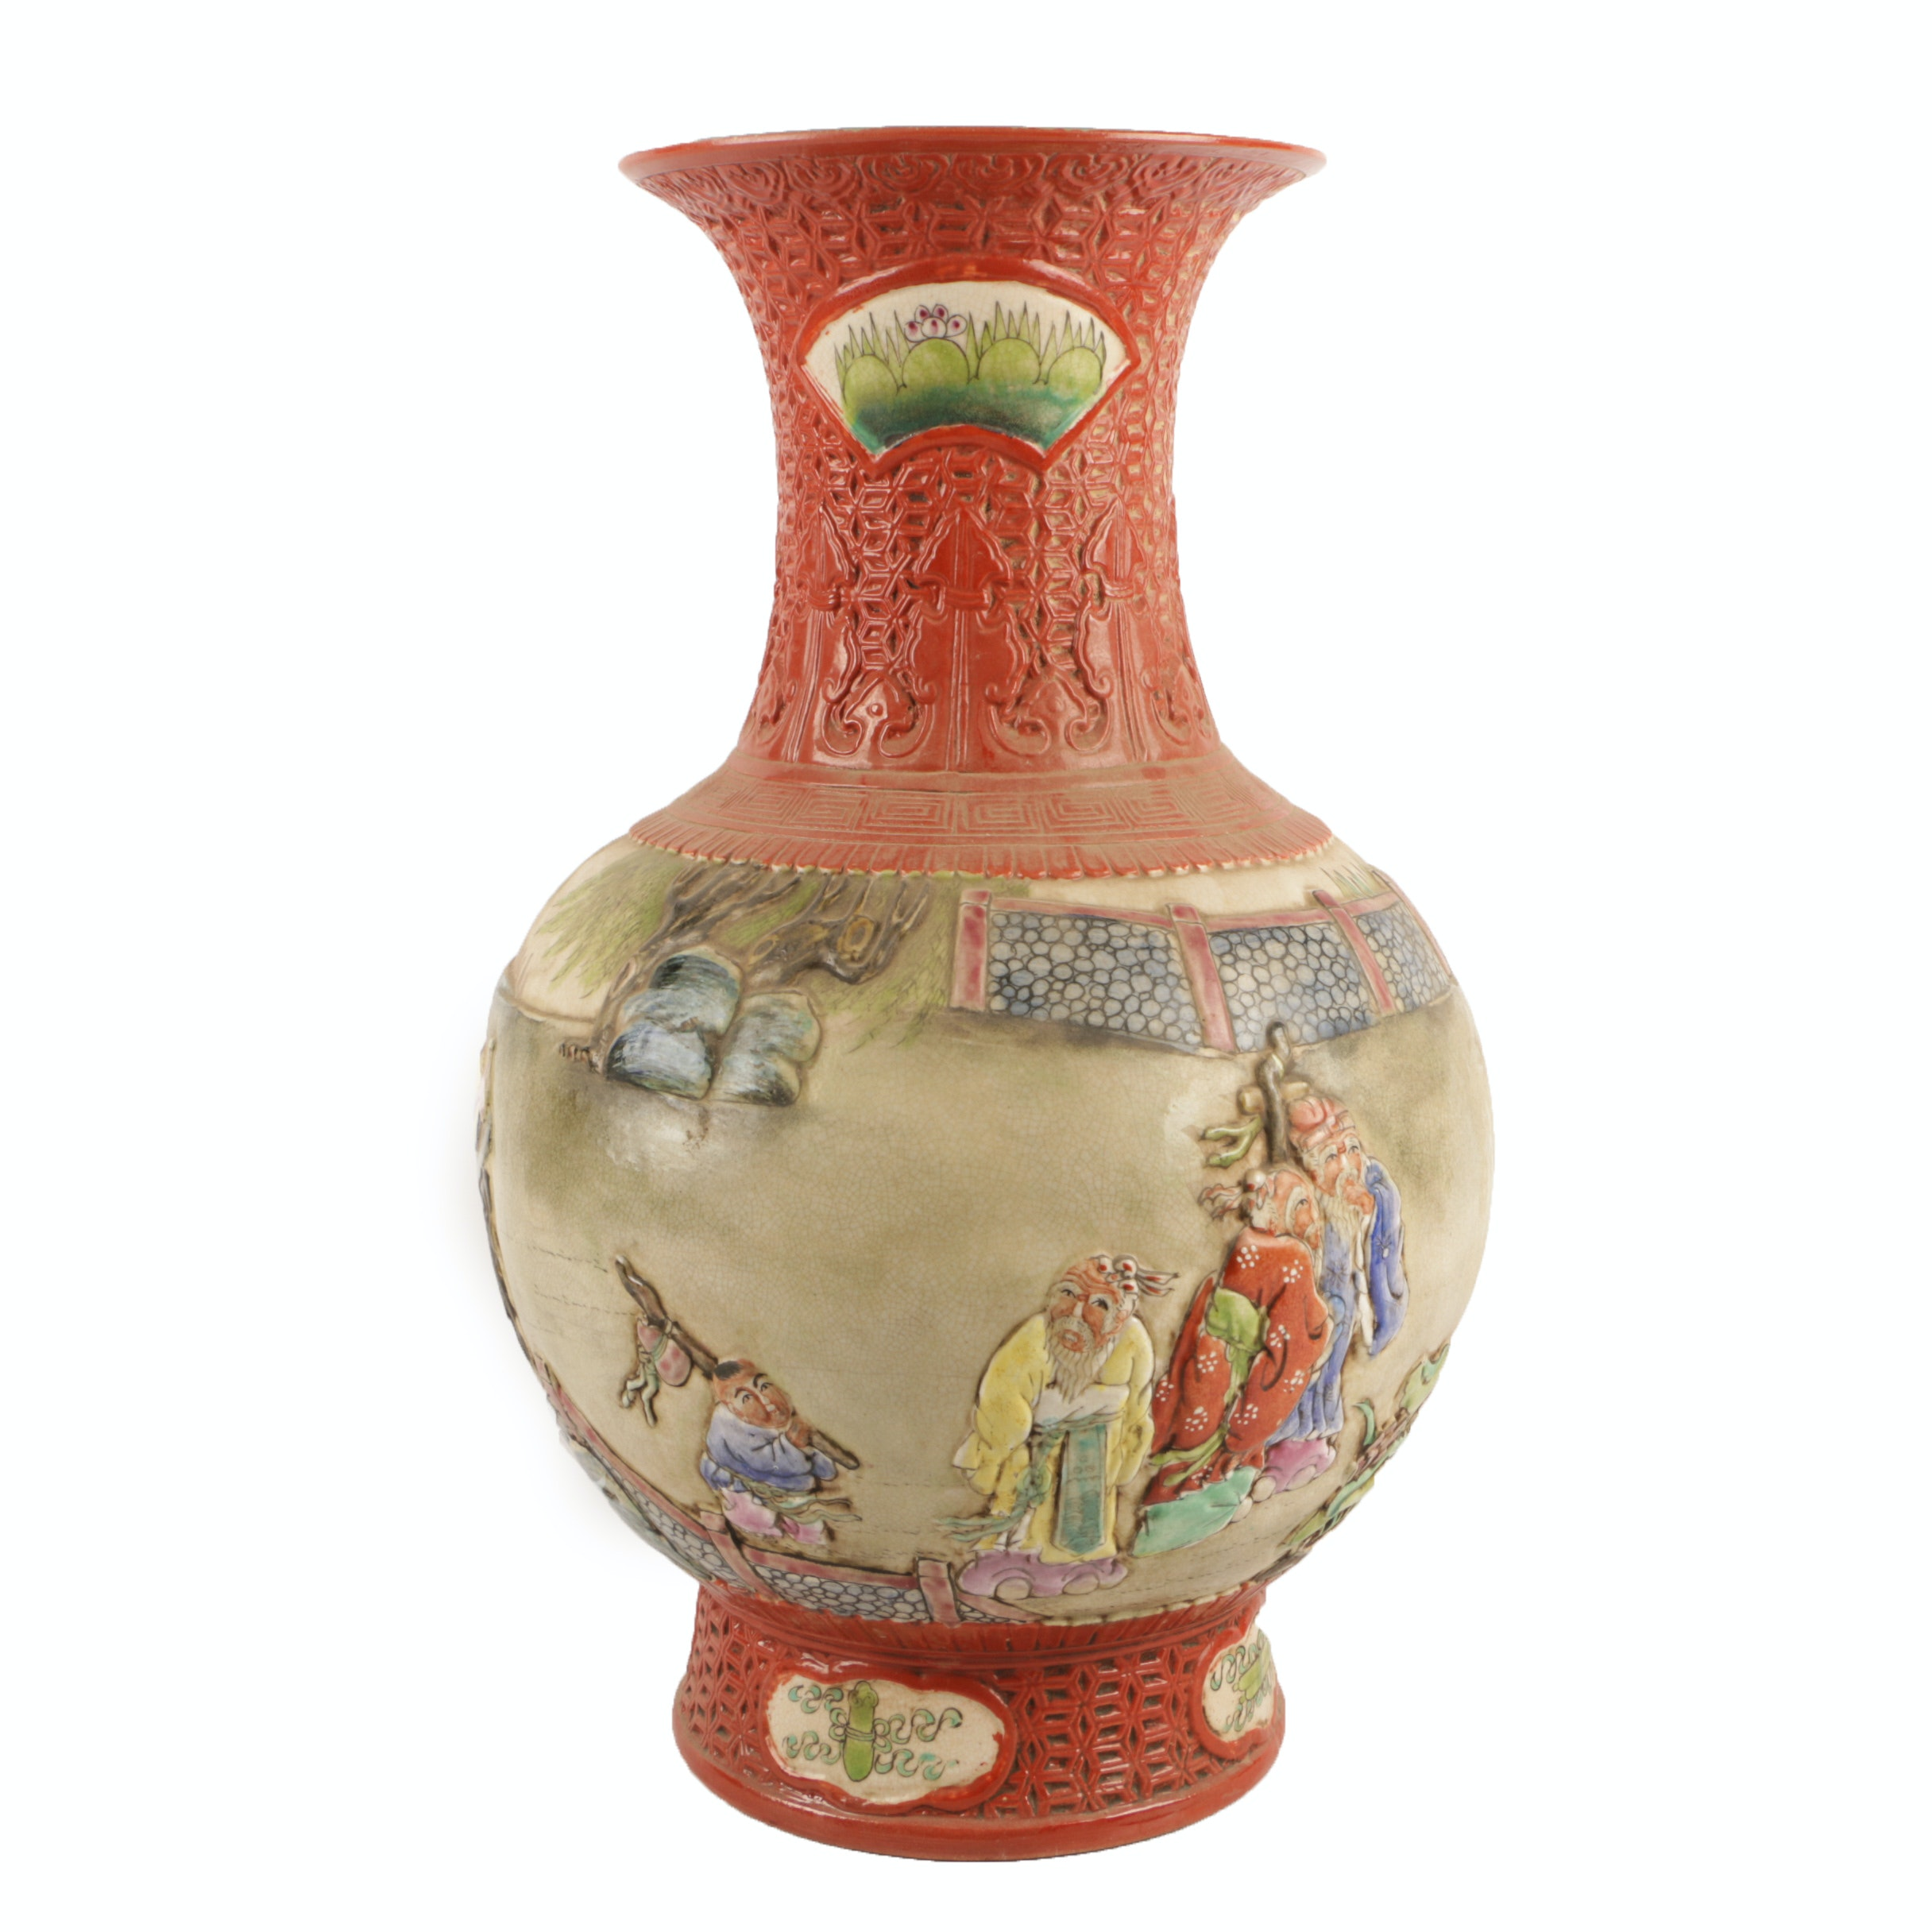 Chinese Hand-Painted Embossed Ceramic Vase with a Figural Scene